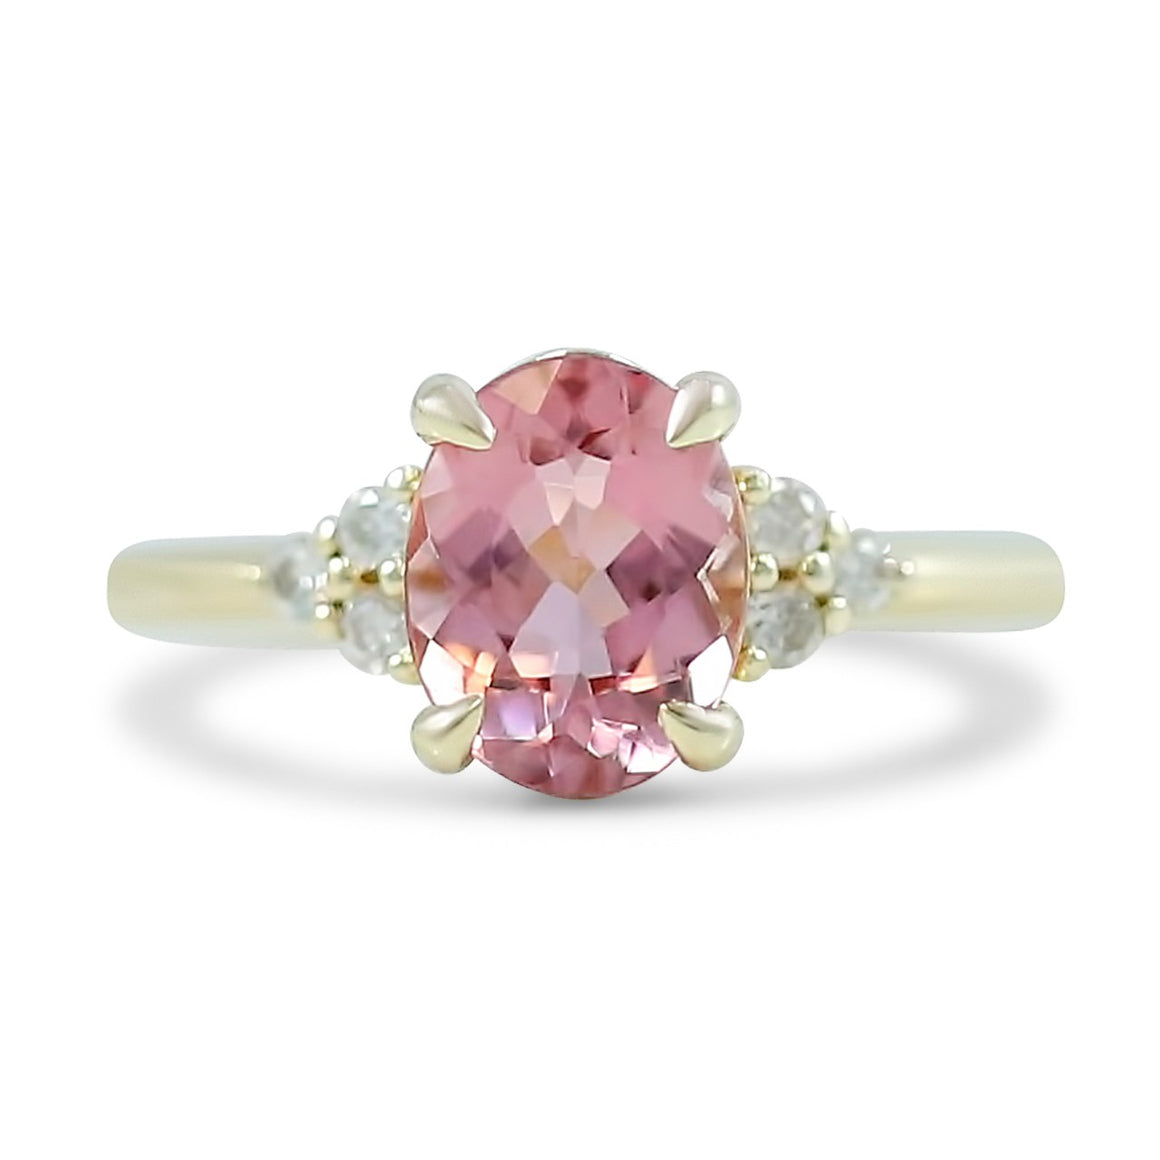 14k yellow gold oval pink tourmaline gemstone engagement ring with clusters of white diamonds on both sides